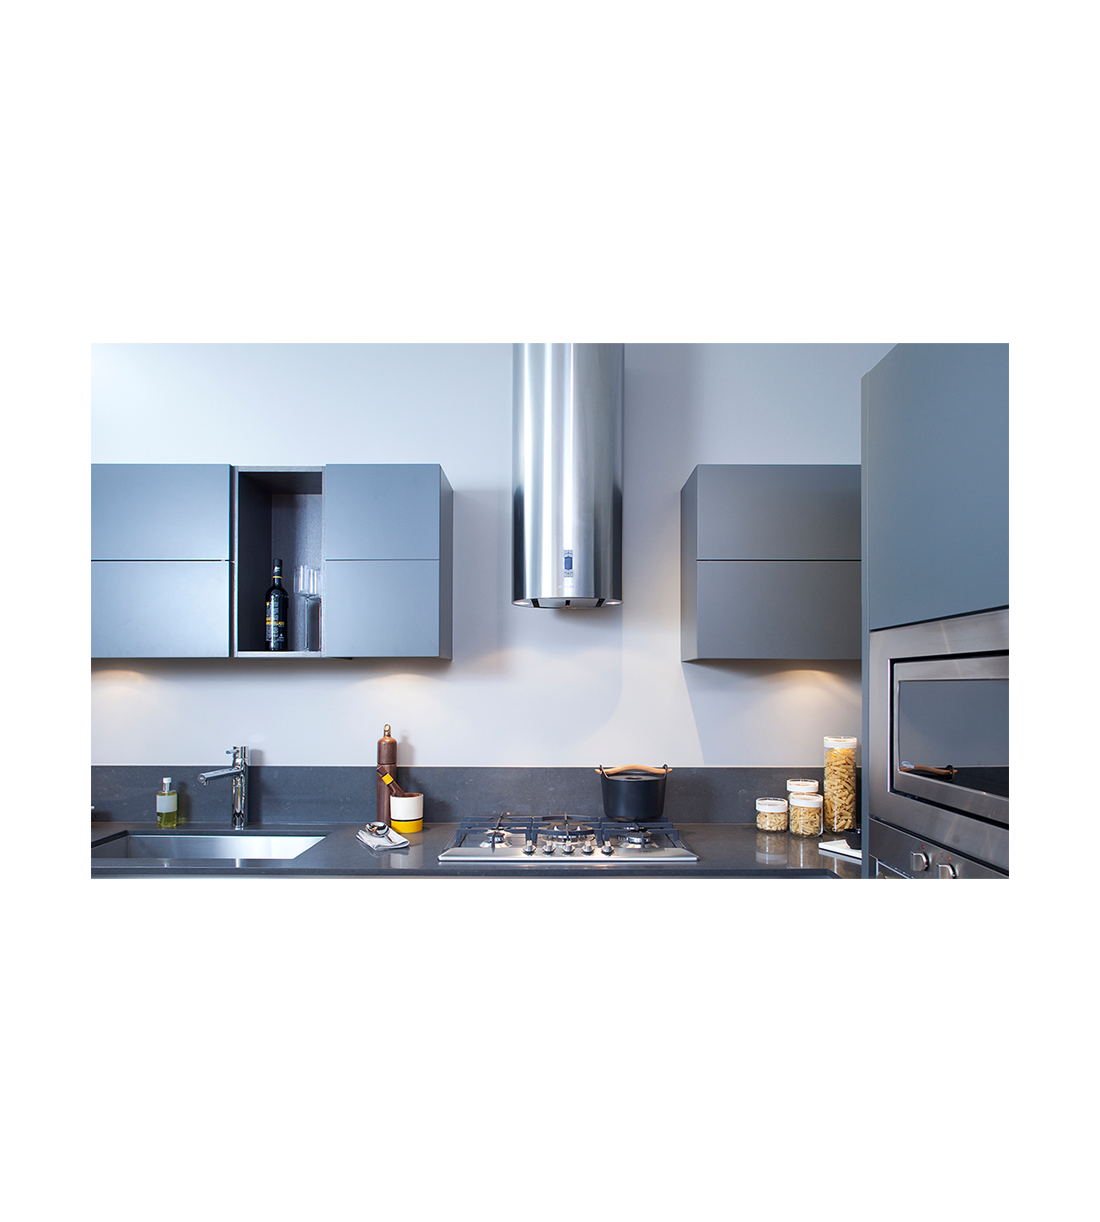 Faber Rangehood 15inch in Stainless Steel color showcased by Corbeil Electro Store